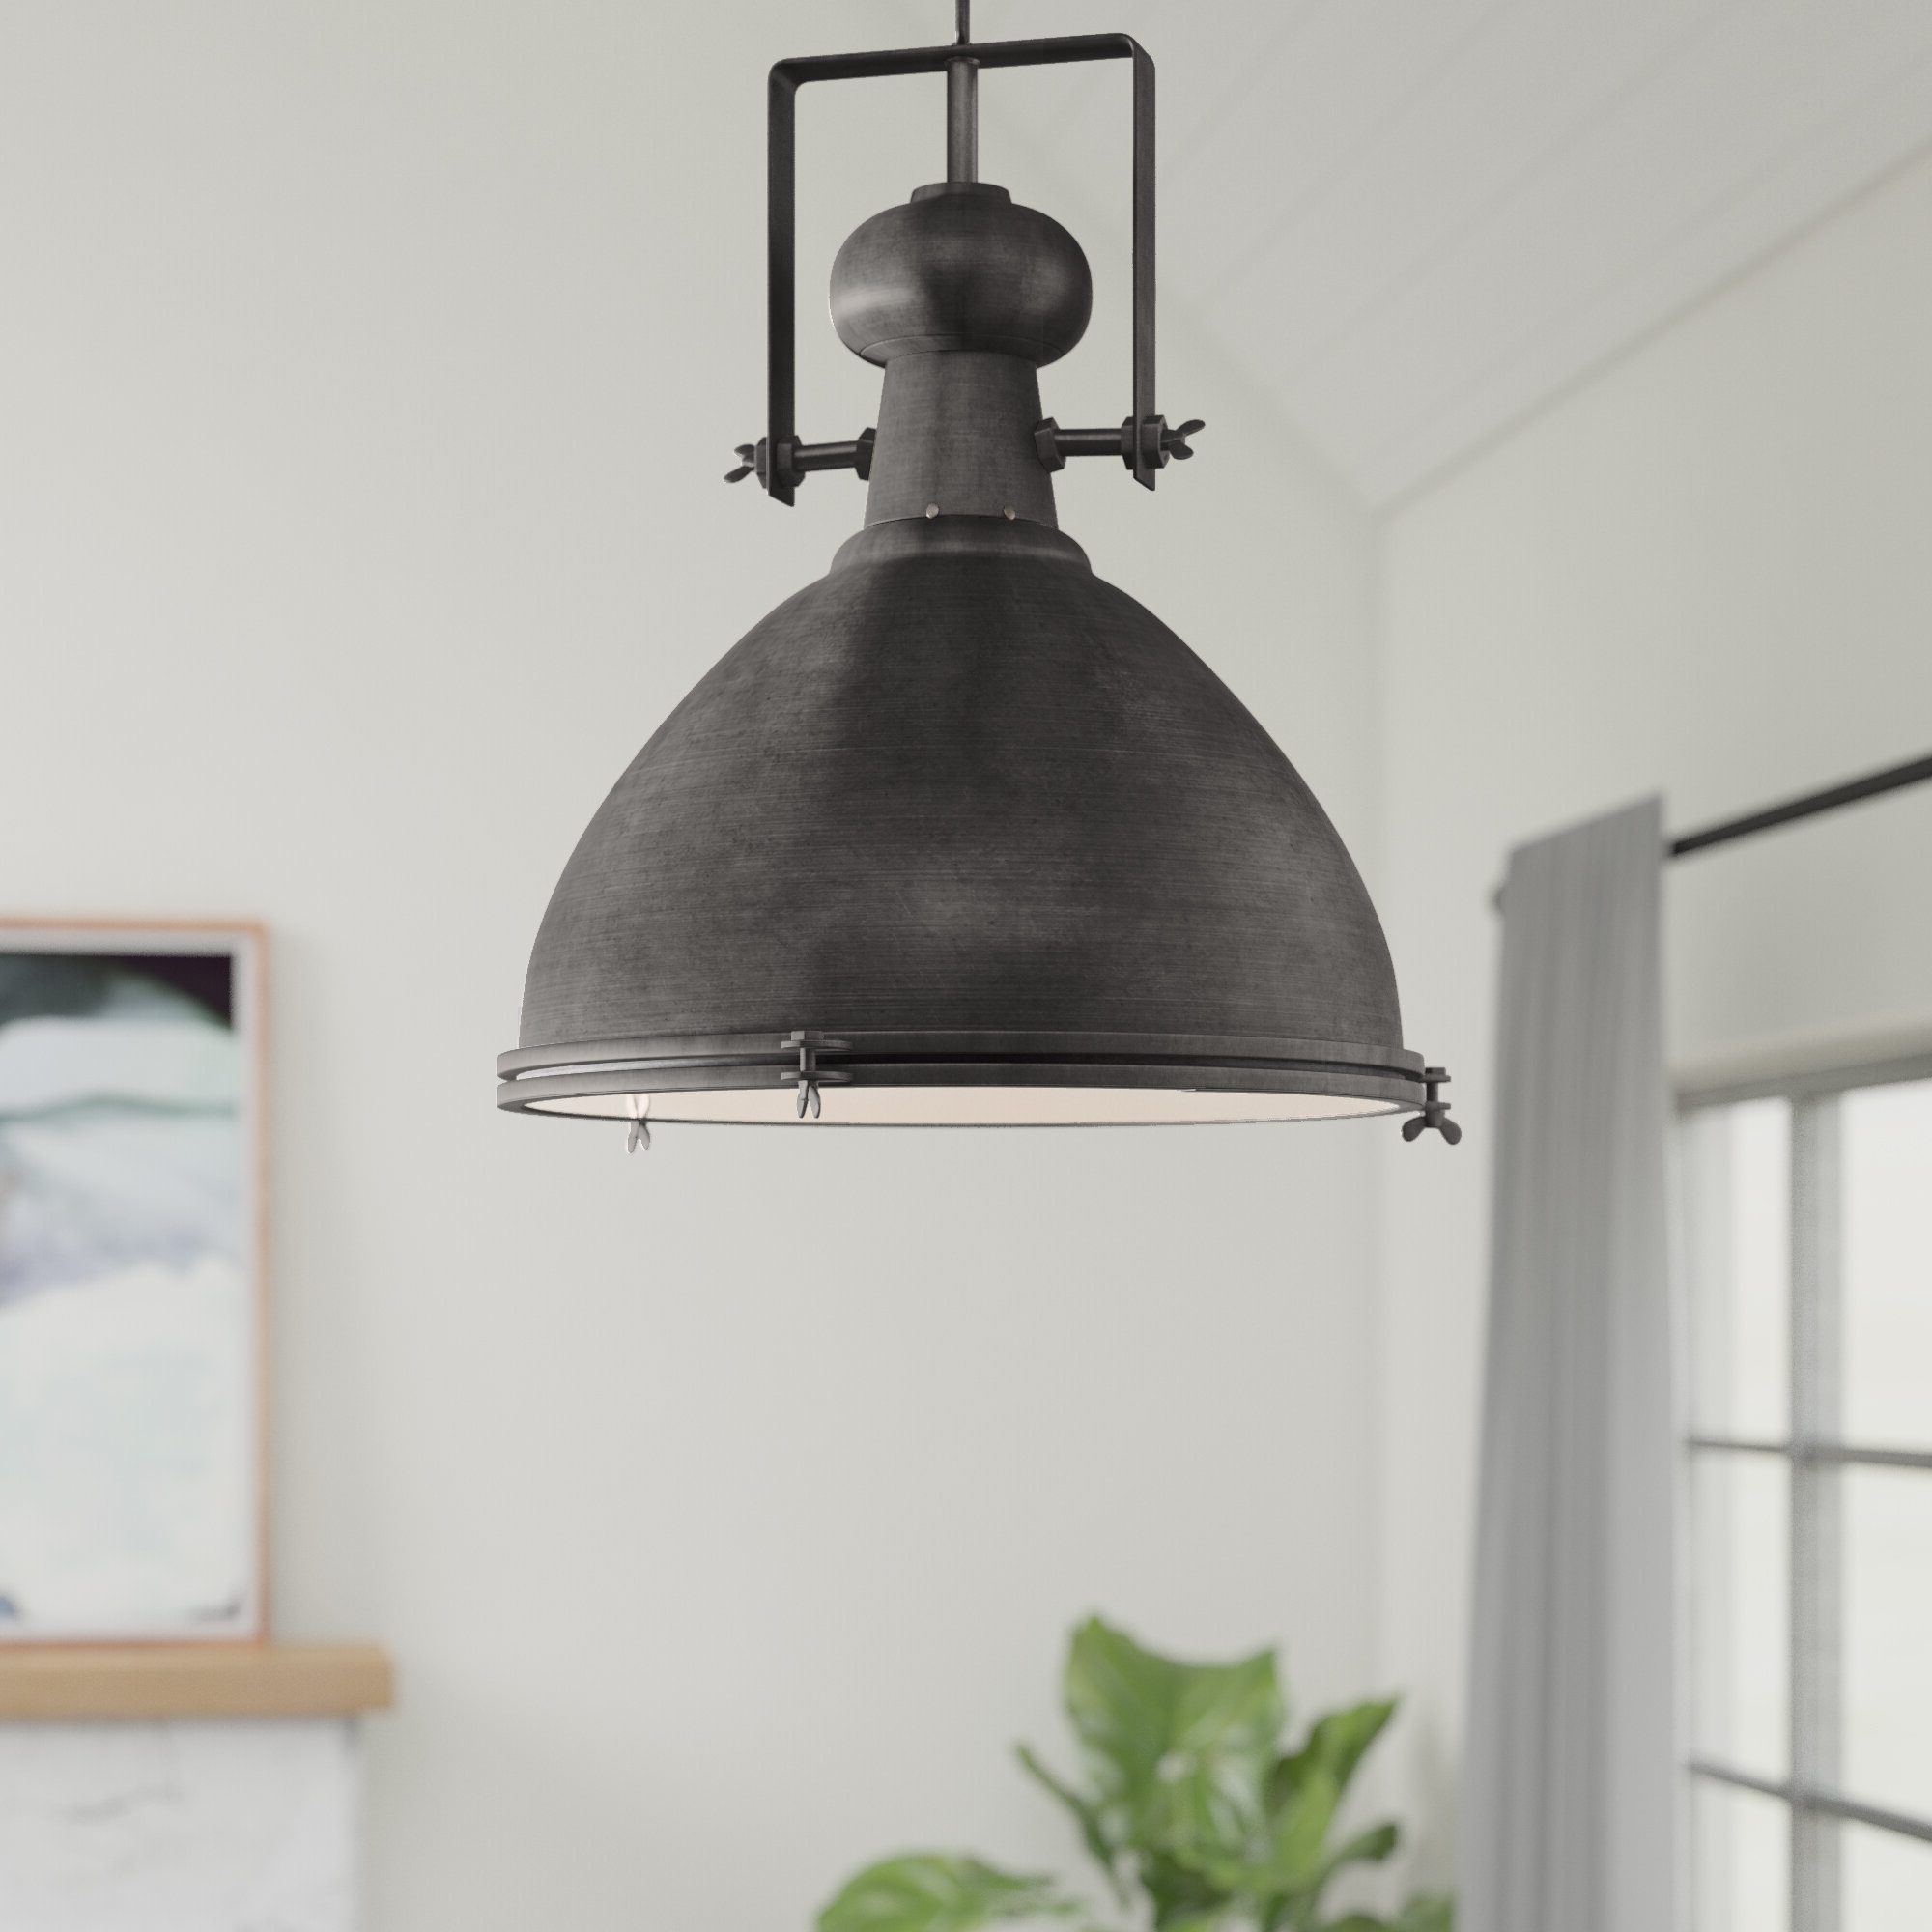 Famous 17 Stories Lavern 1 Light Single Dome Pendant Regarding Granville 3 Light Single Dome Pendants (View 23 of 25)